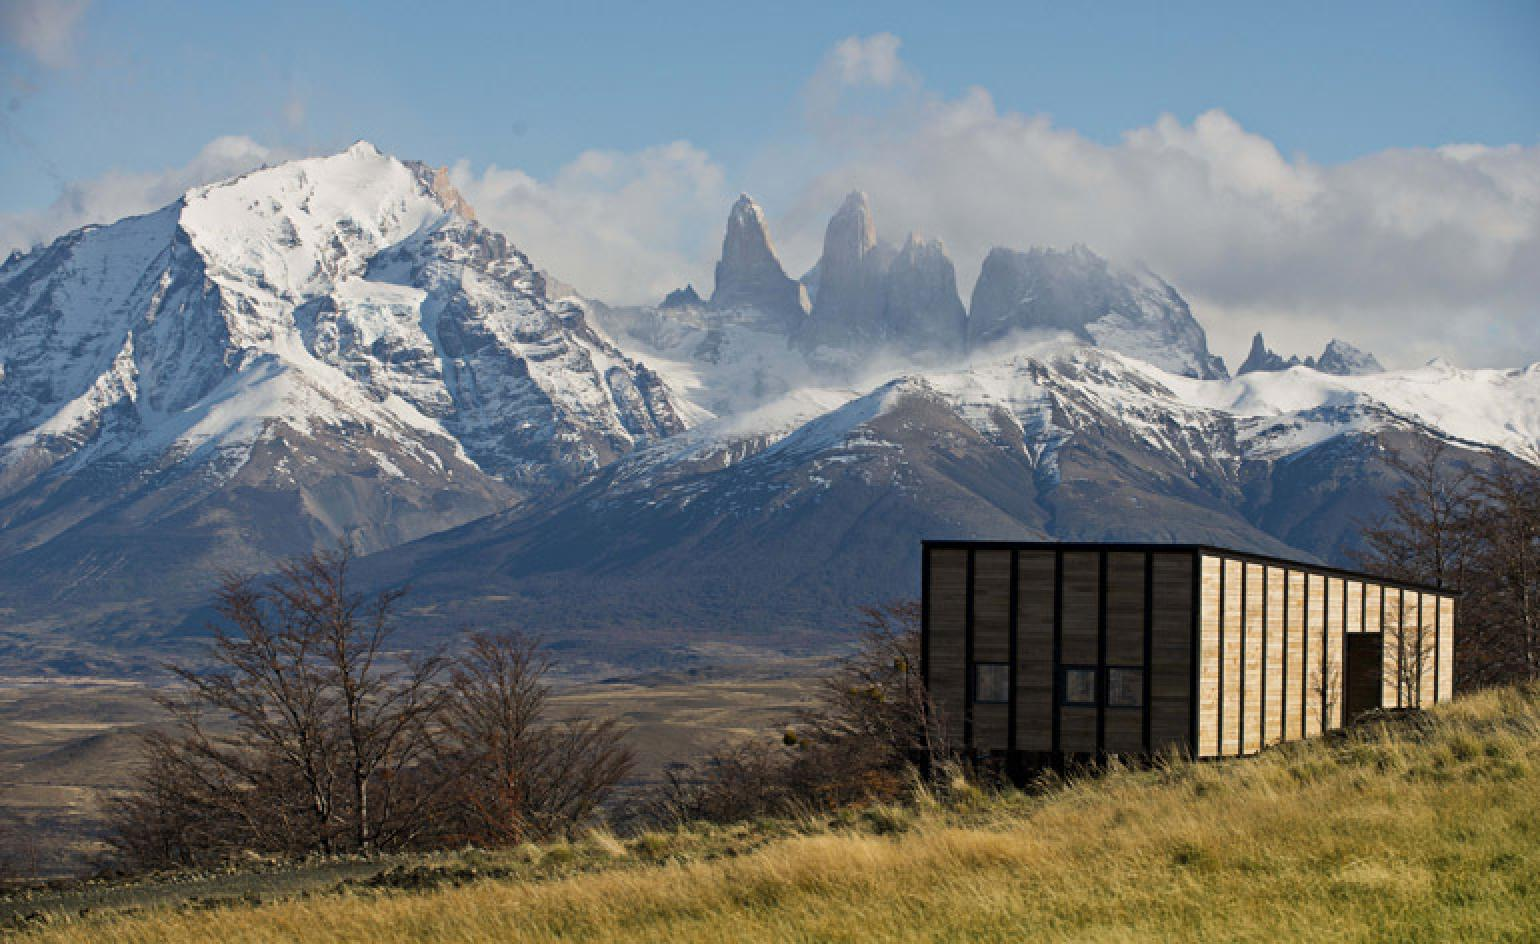 on sale d263a 6553b Awasi — Patagonia, Chile | Wallpaper*